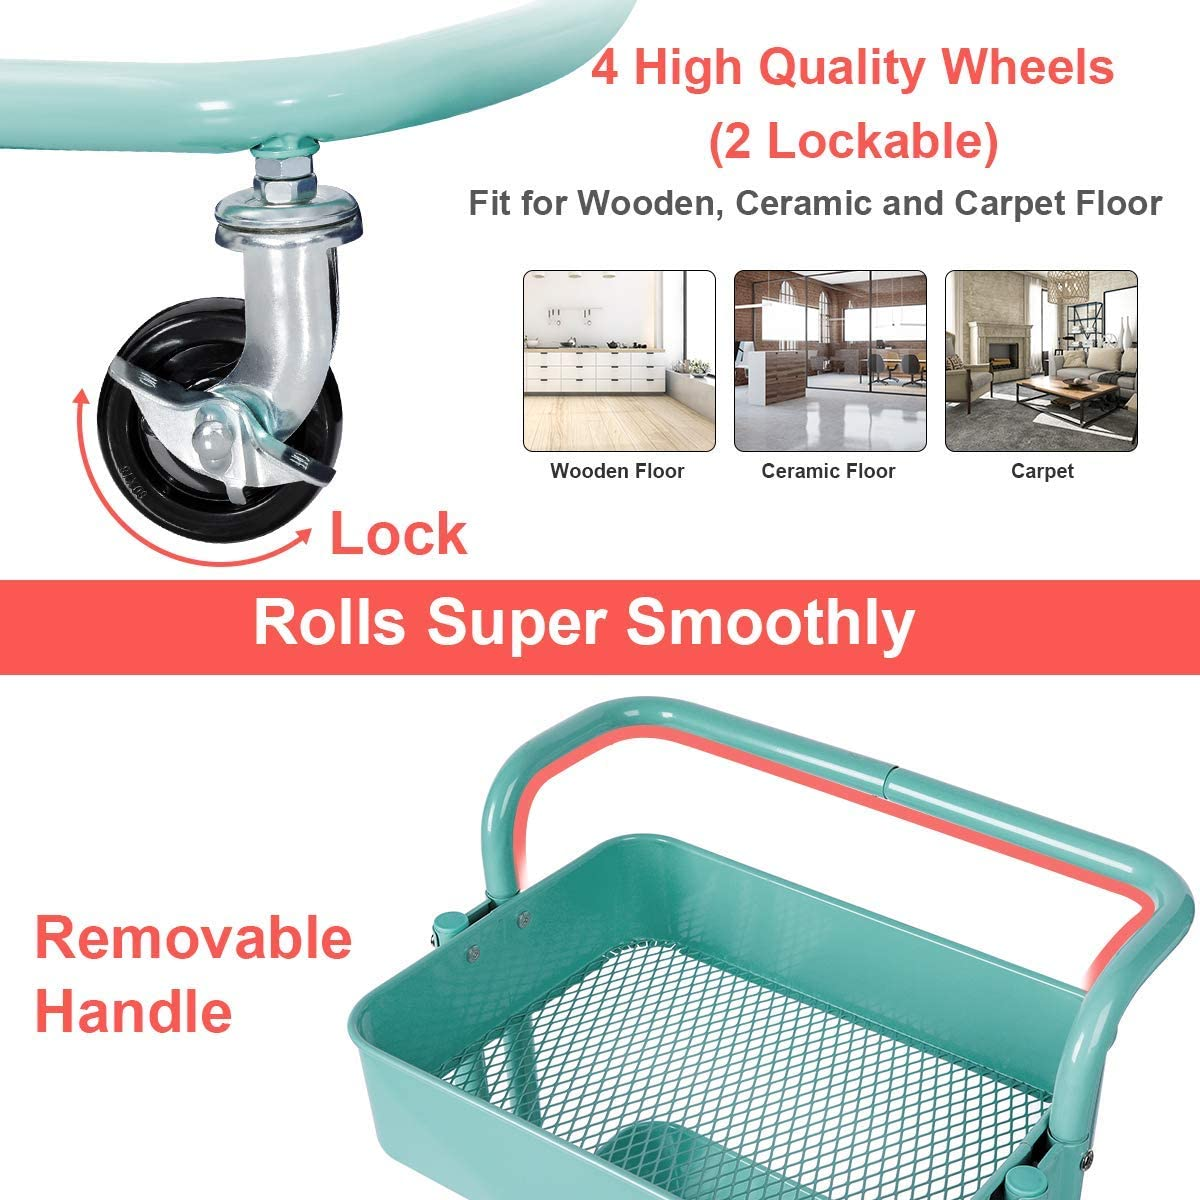 Home Crafts Orange Tech 3-Tier Rolling Utility Cart with Handle Gray Metal Rolling Cart with Moving Smoothly Wheels for Arts Multifunction Storage Trolley -Heavy Duty Cart Basket Shelf Office